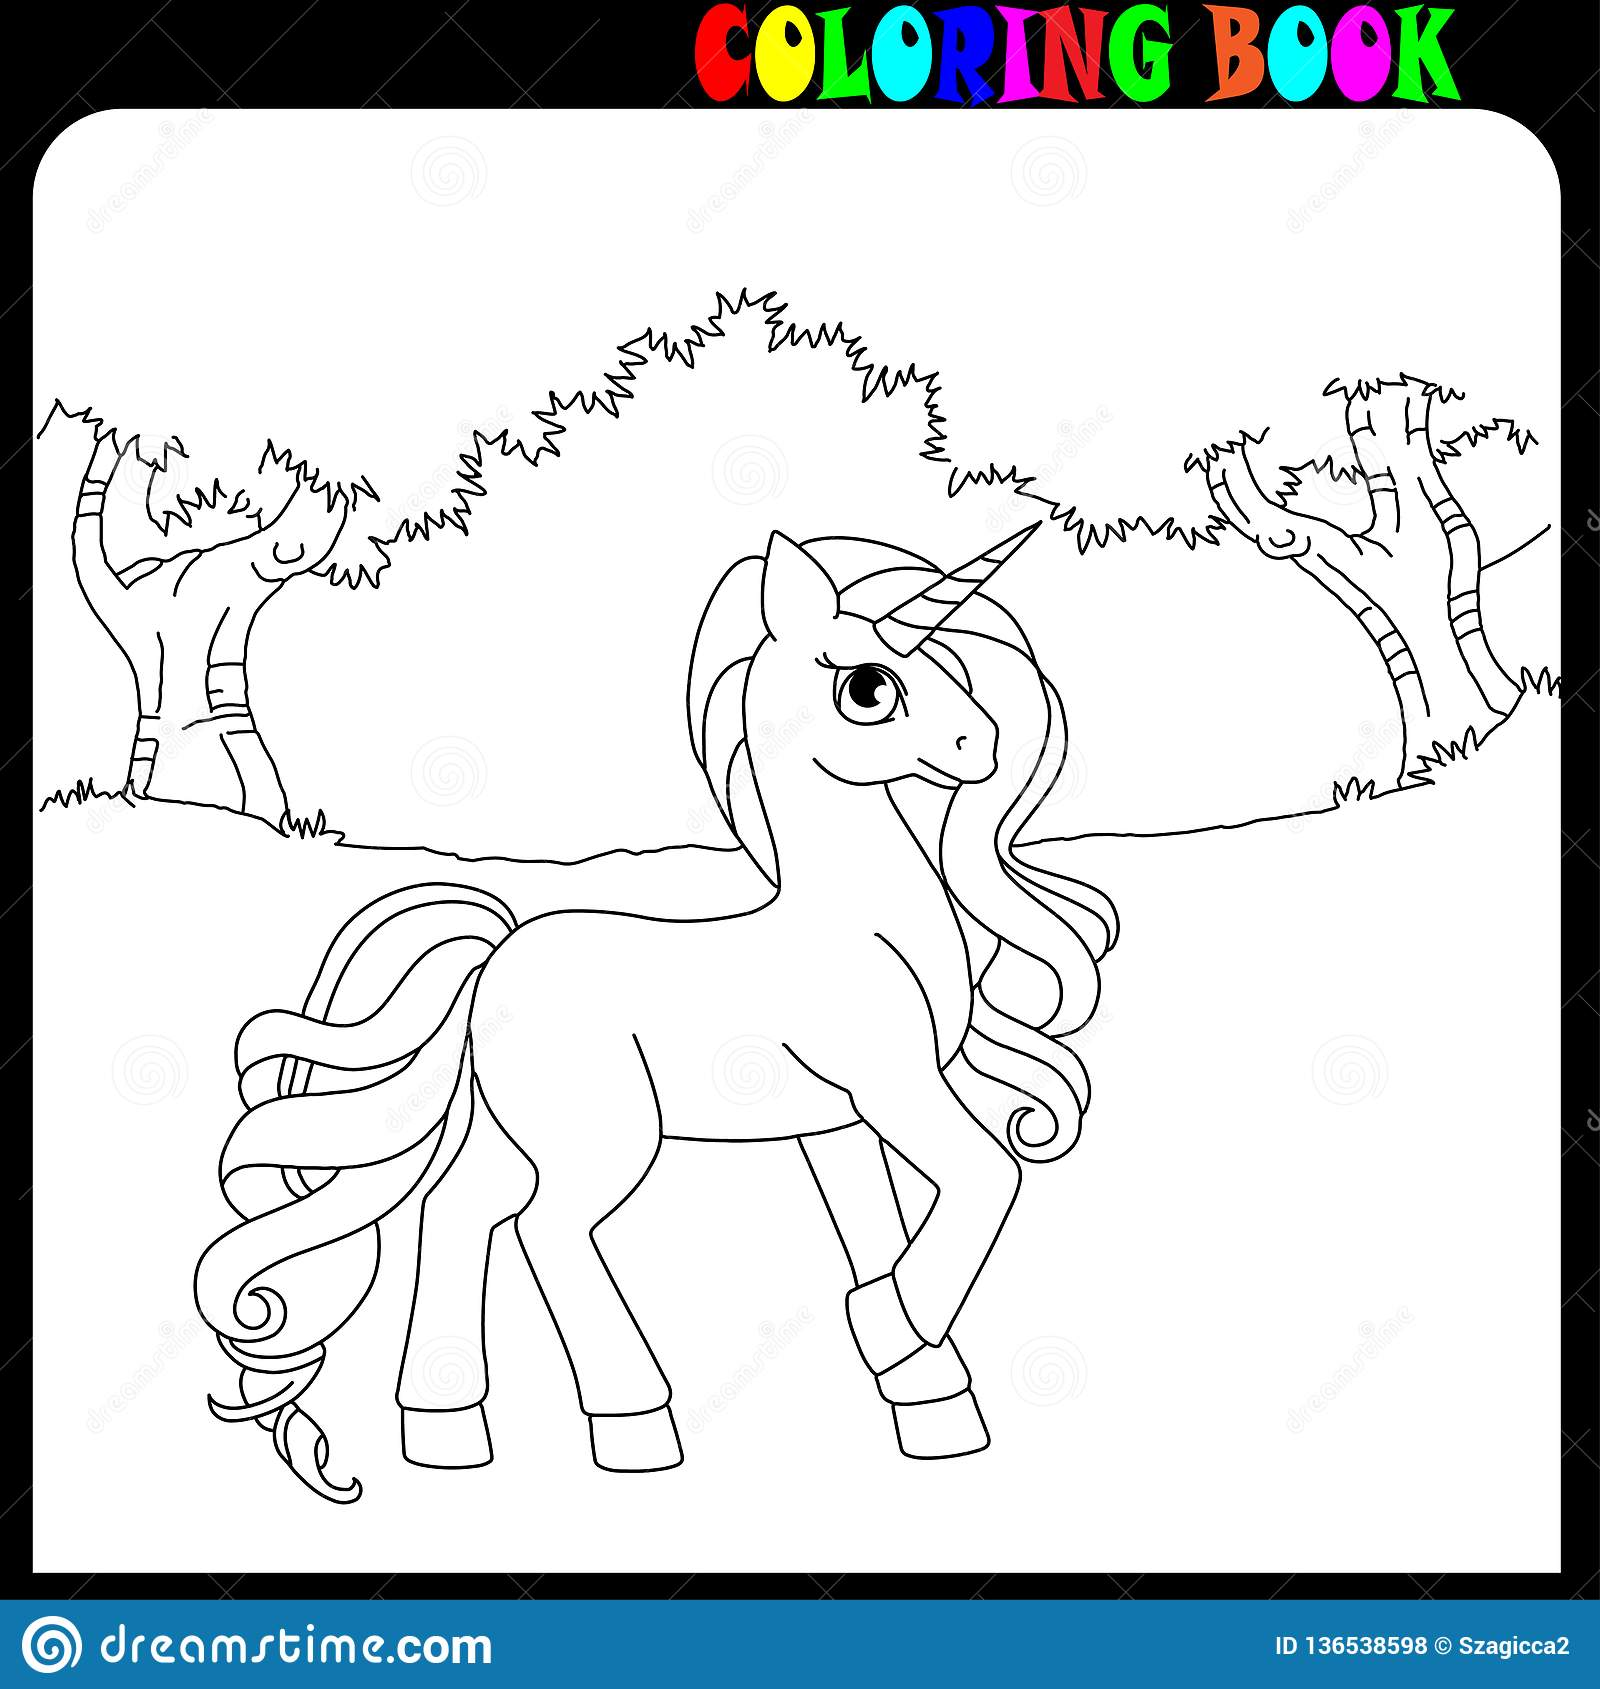 Coloring Book Unicorn Horse Or Pony Theme In The Garden Or Forest Stock Vector Illustration Of Animal Forest 136538598